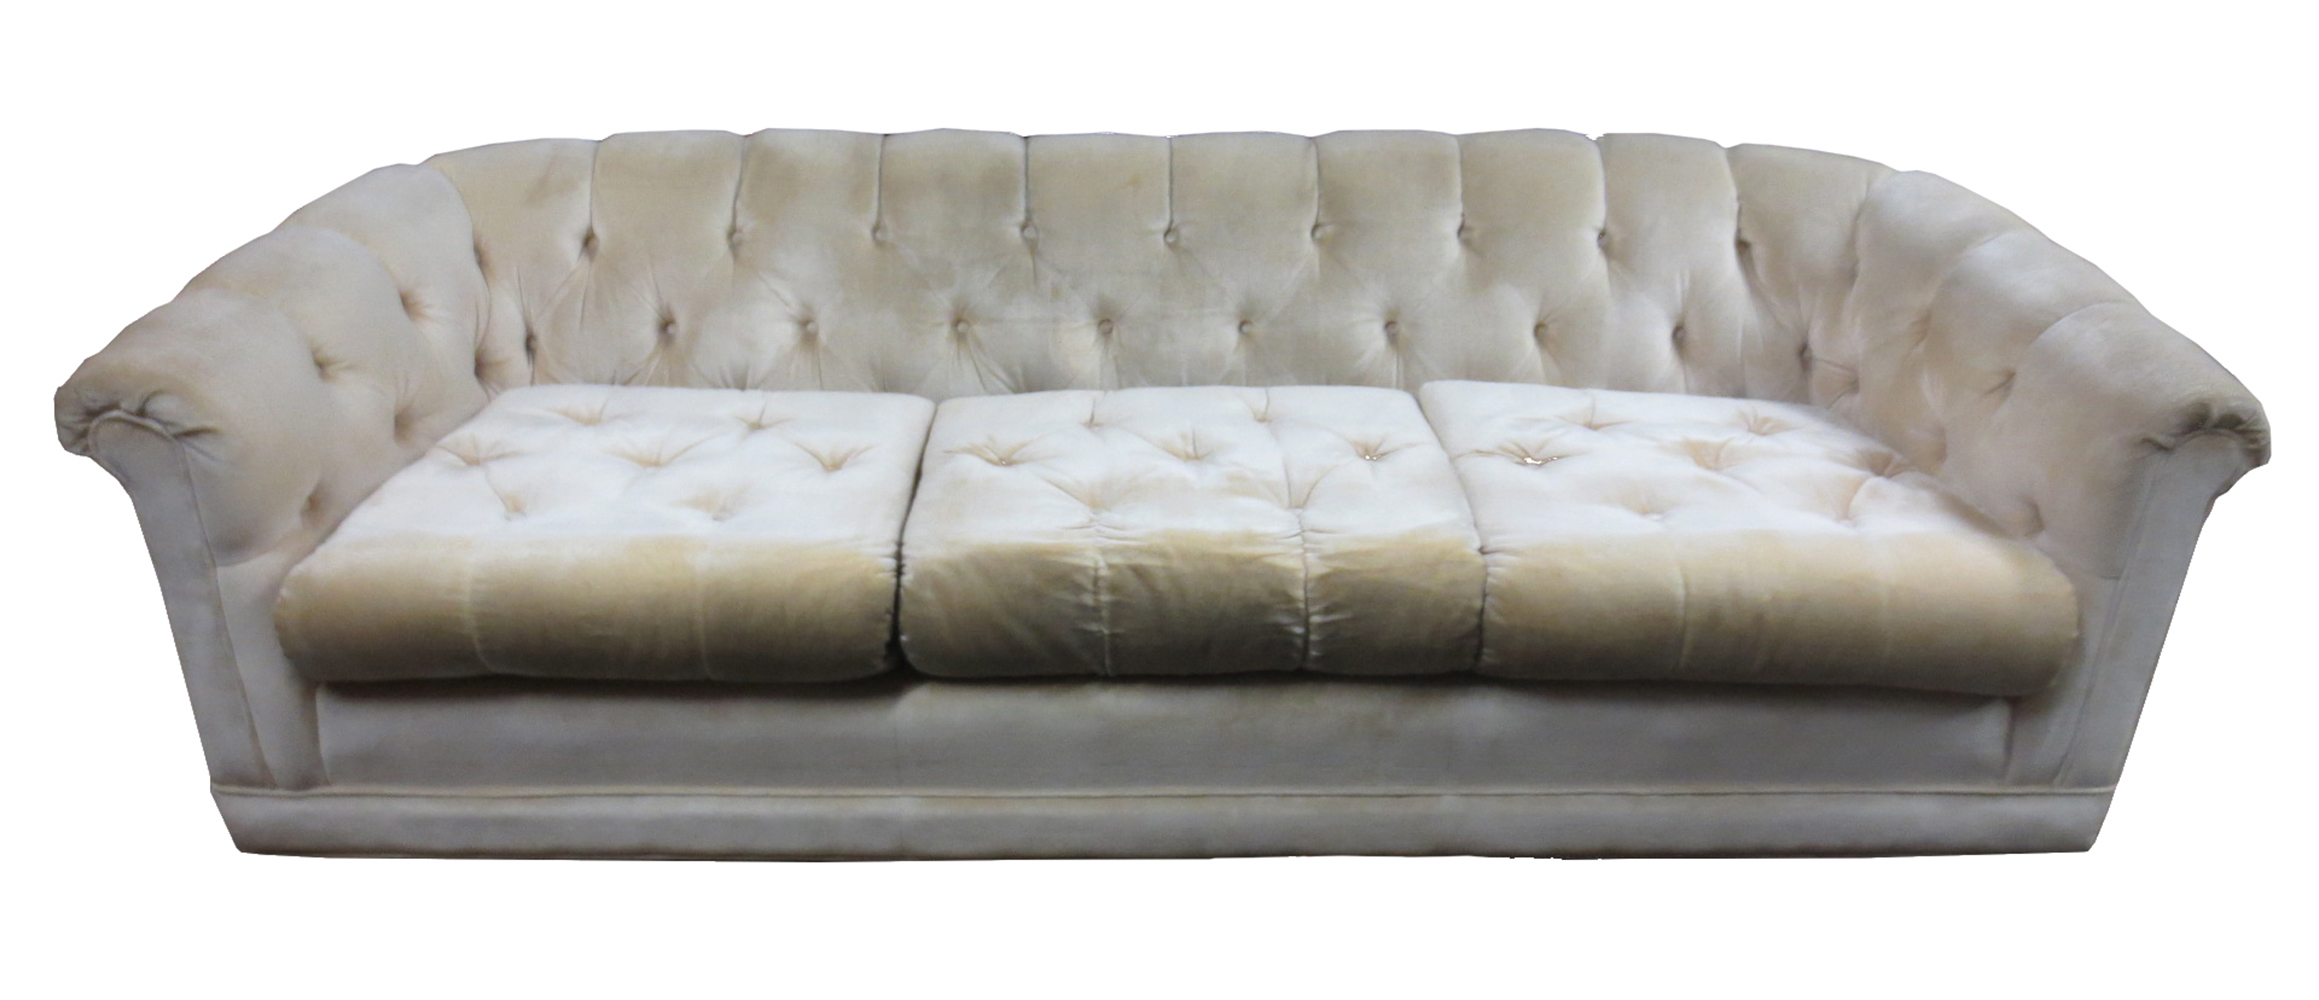 Plush Sofa Hollywood Regency Tufted Plush Sofa Chairish